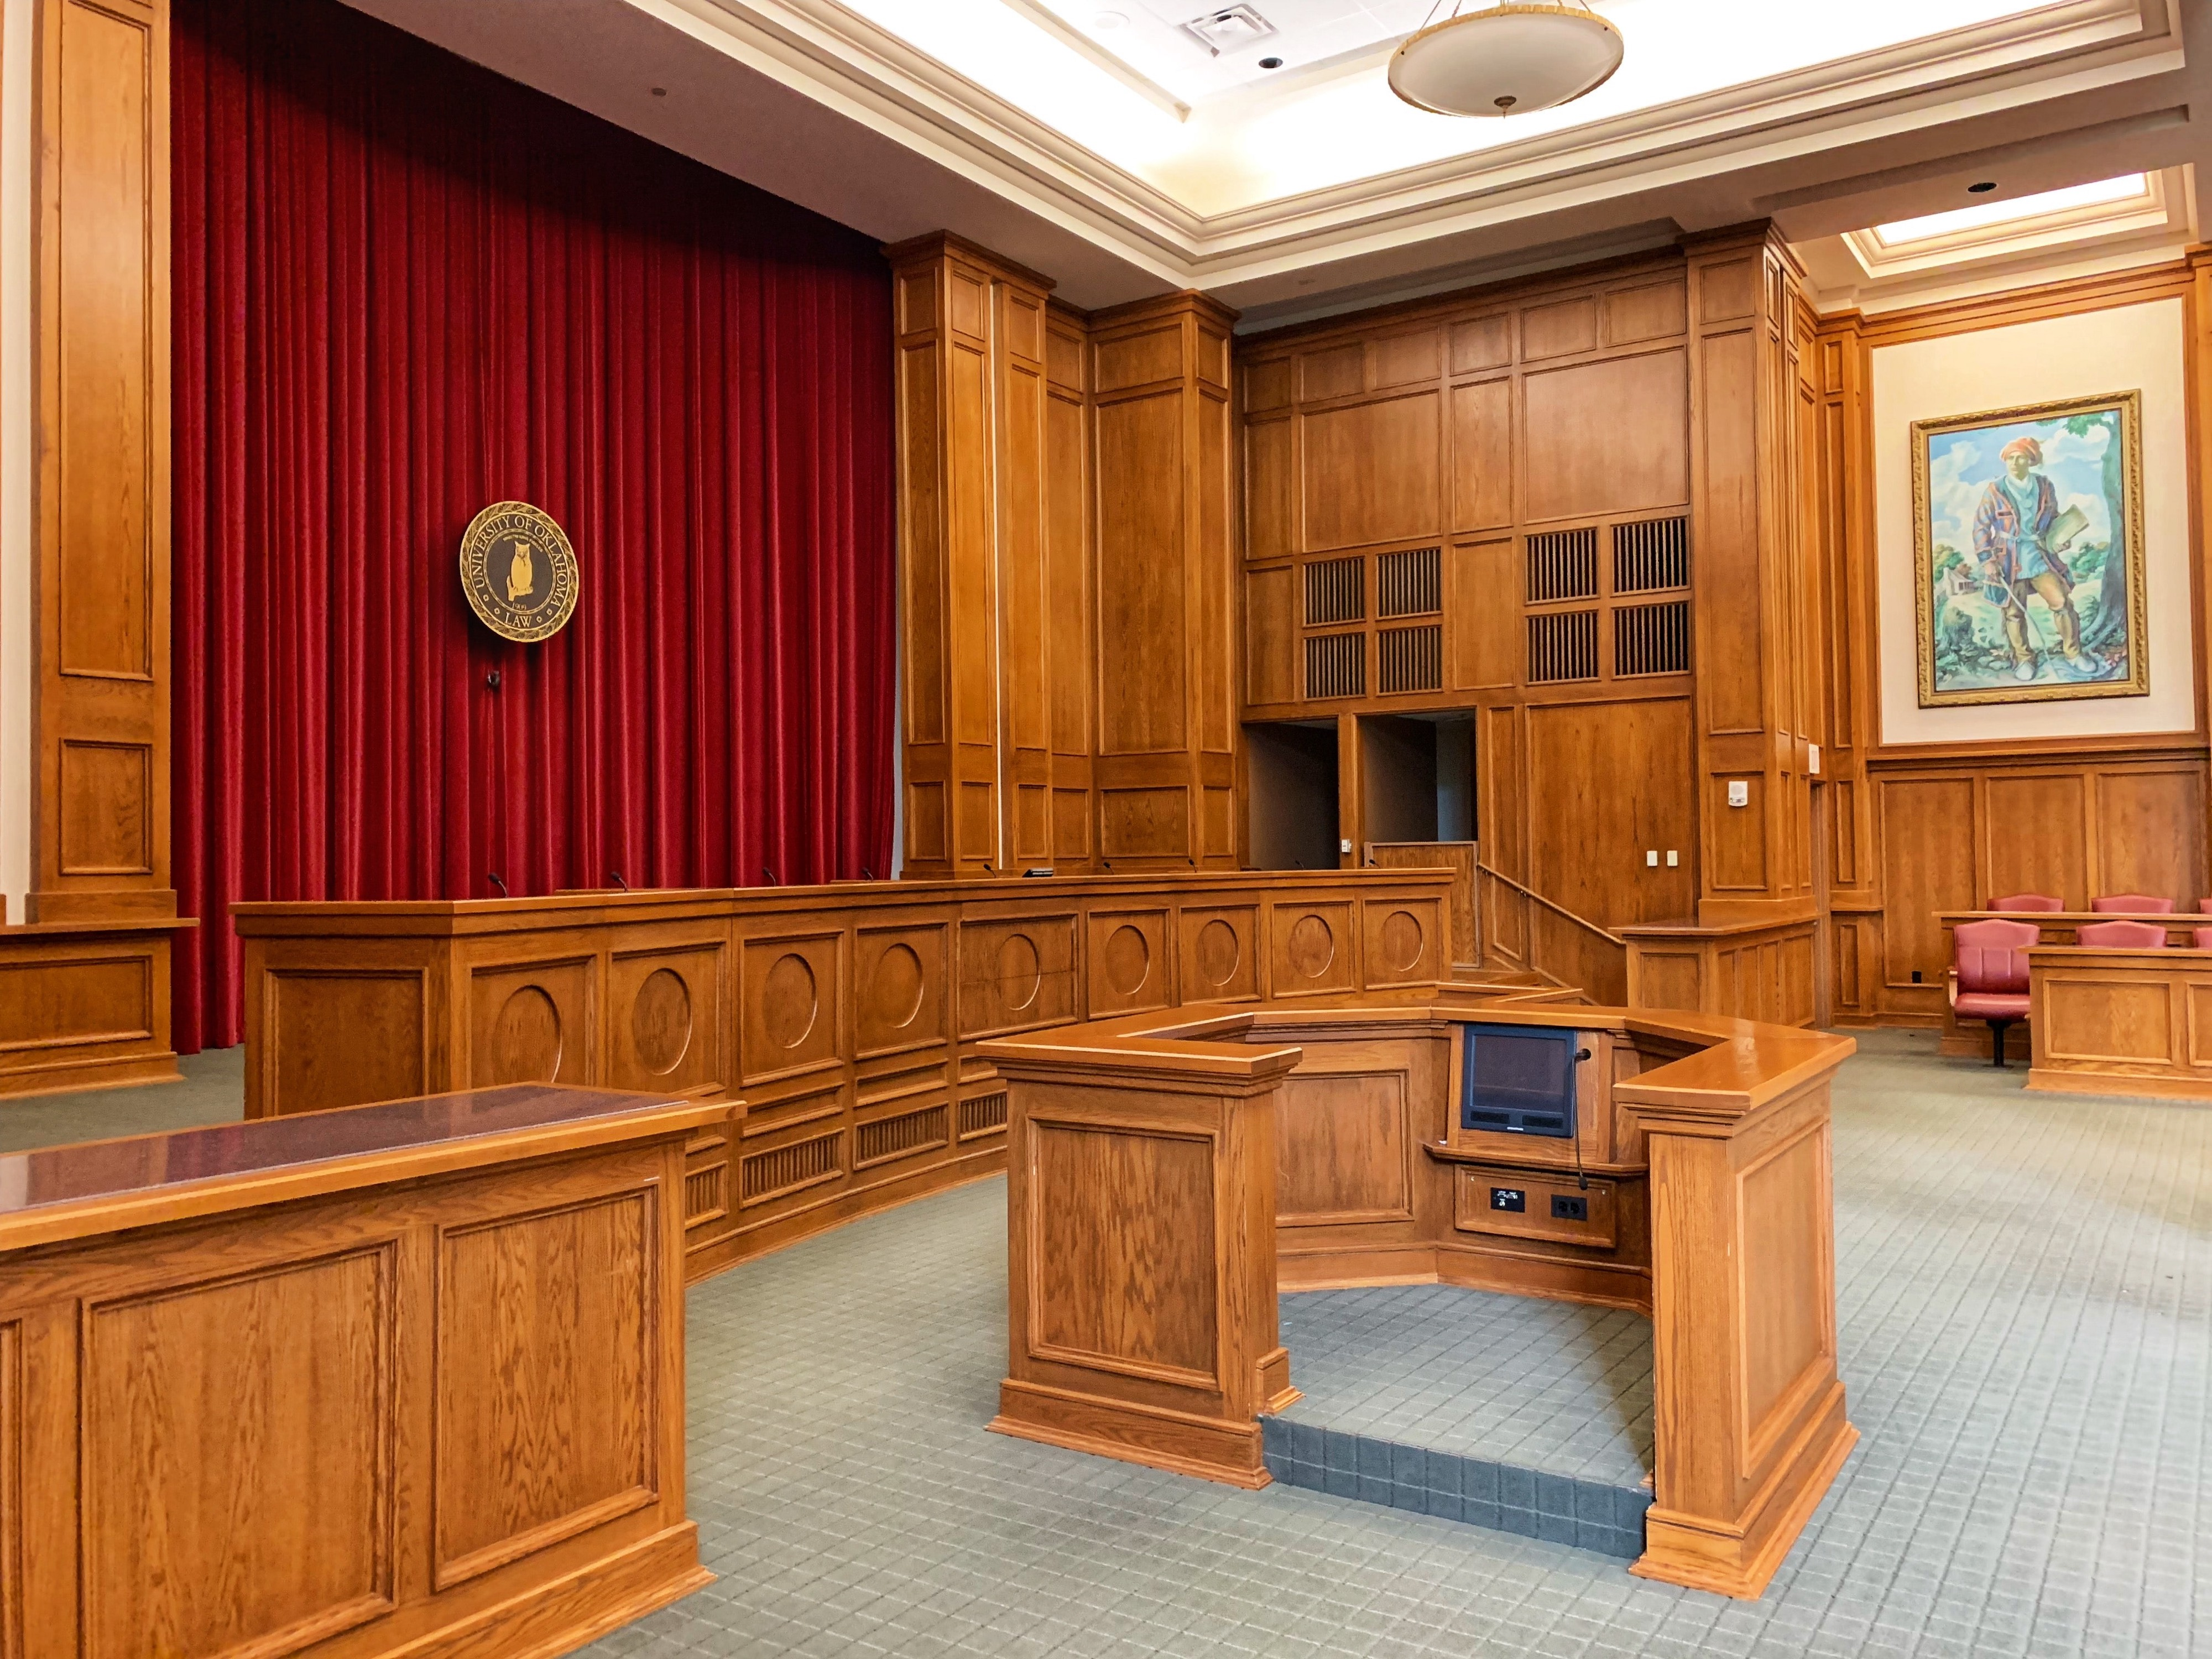 Old-style courtroom with lots of wood and maroon velvet drapes